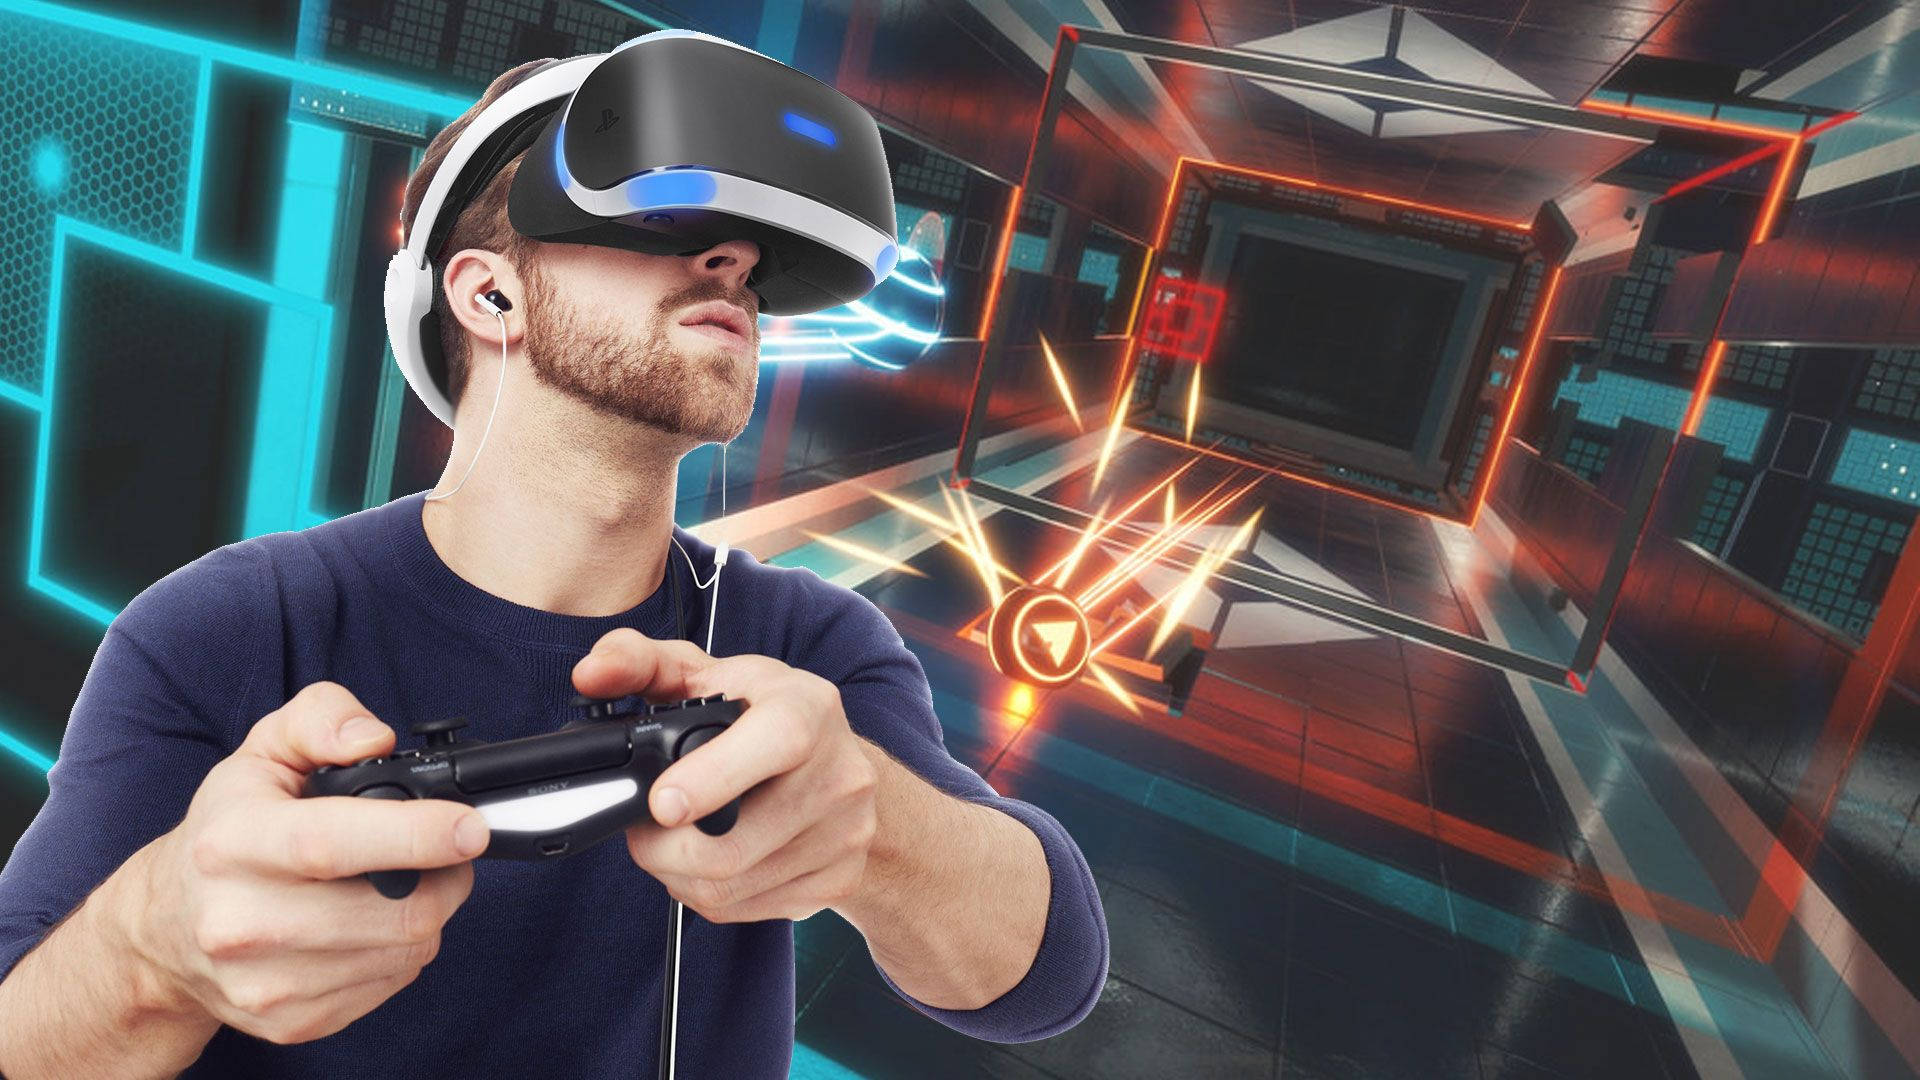 Playing The VR Reality Arcade Games